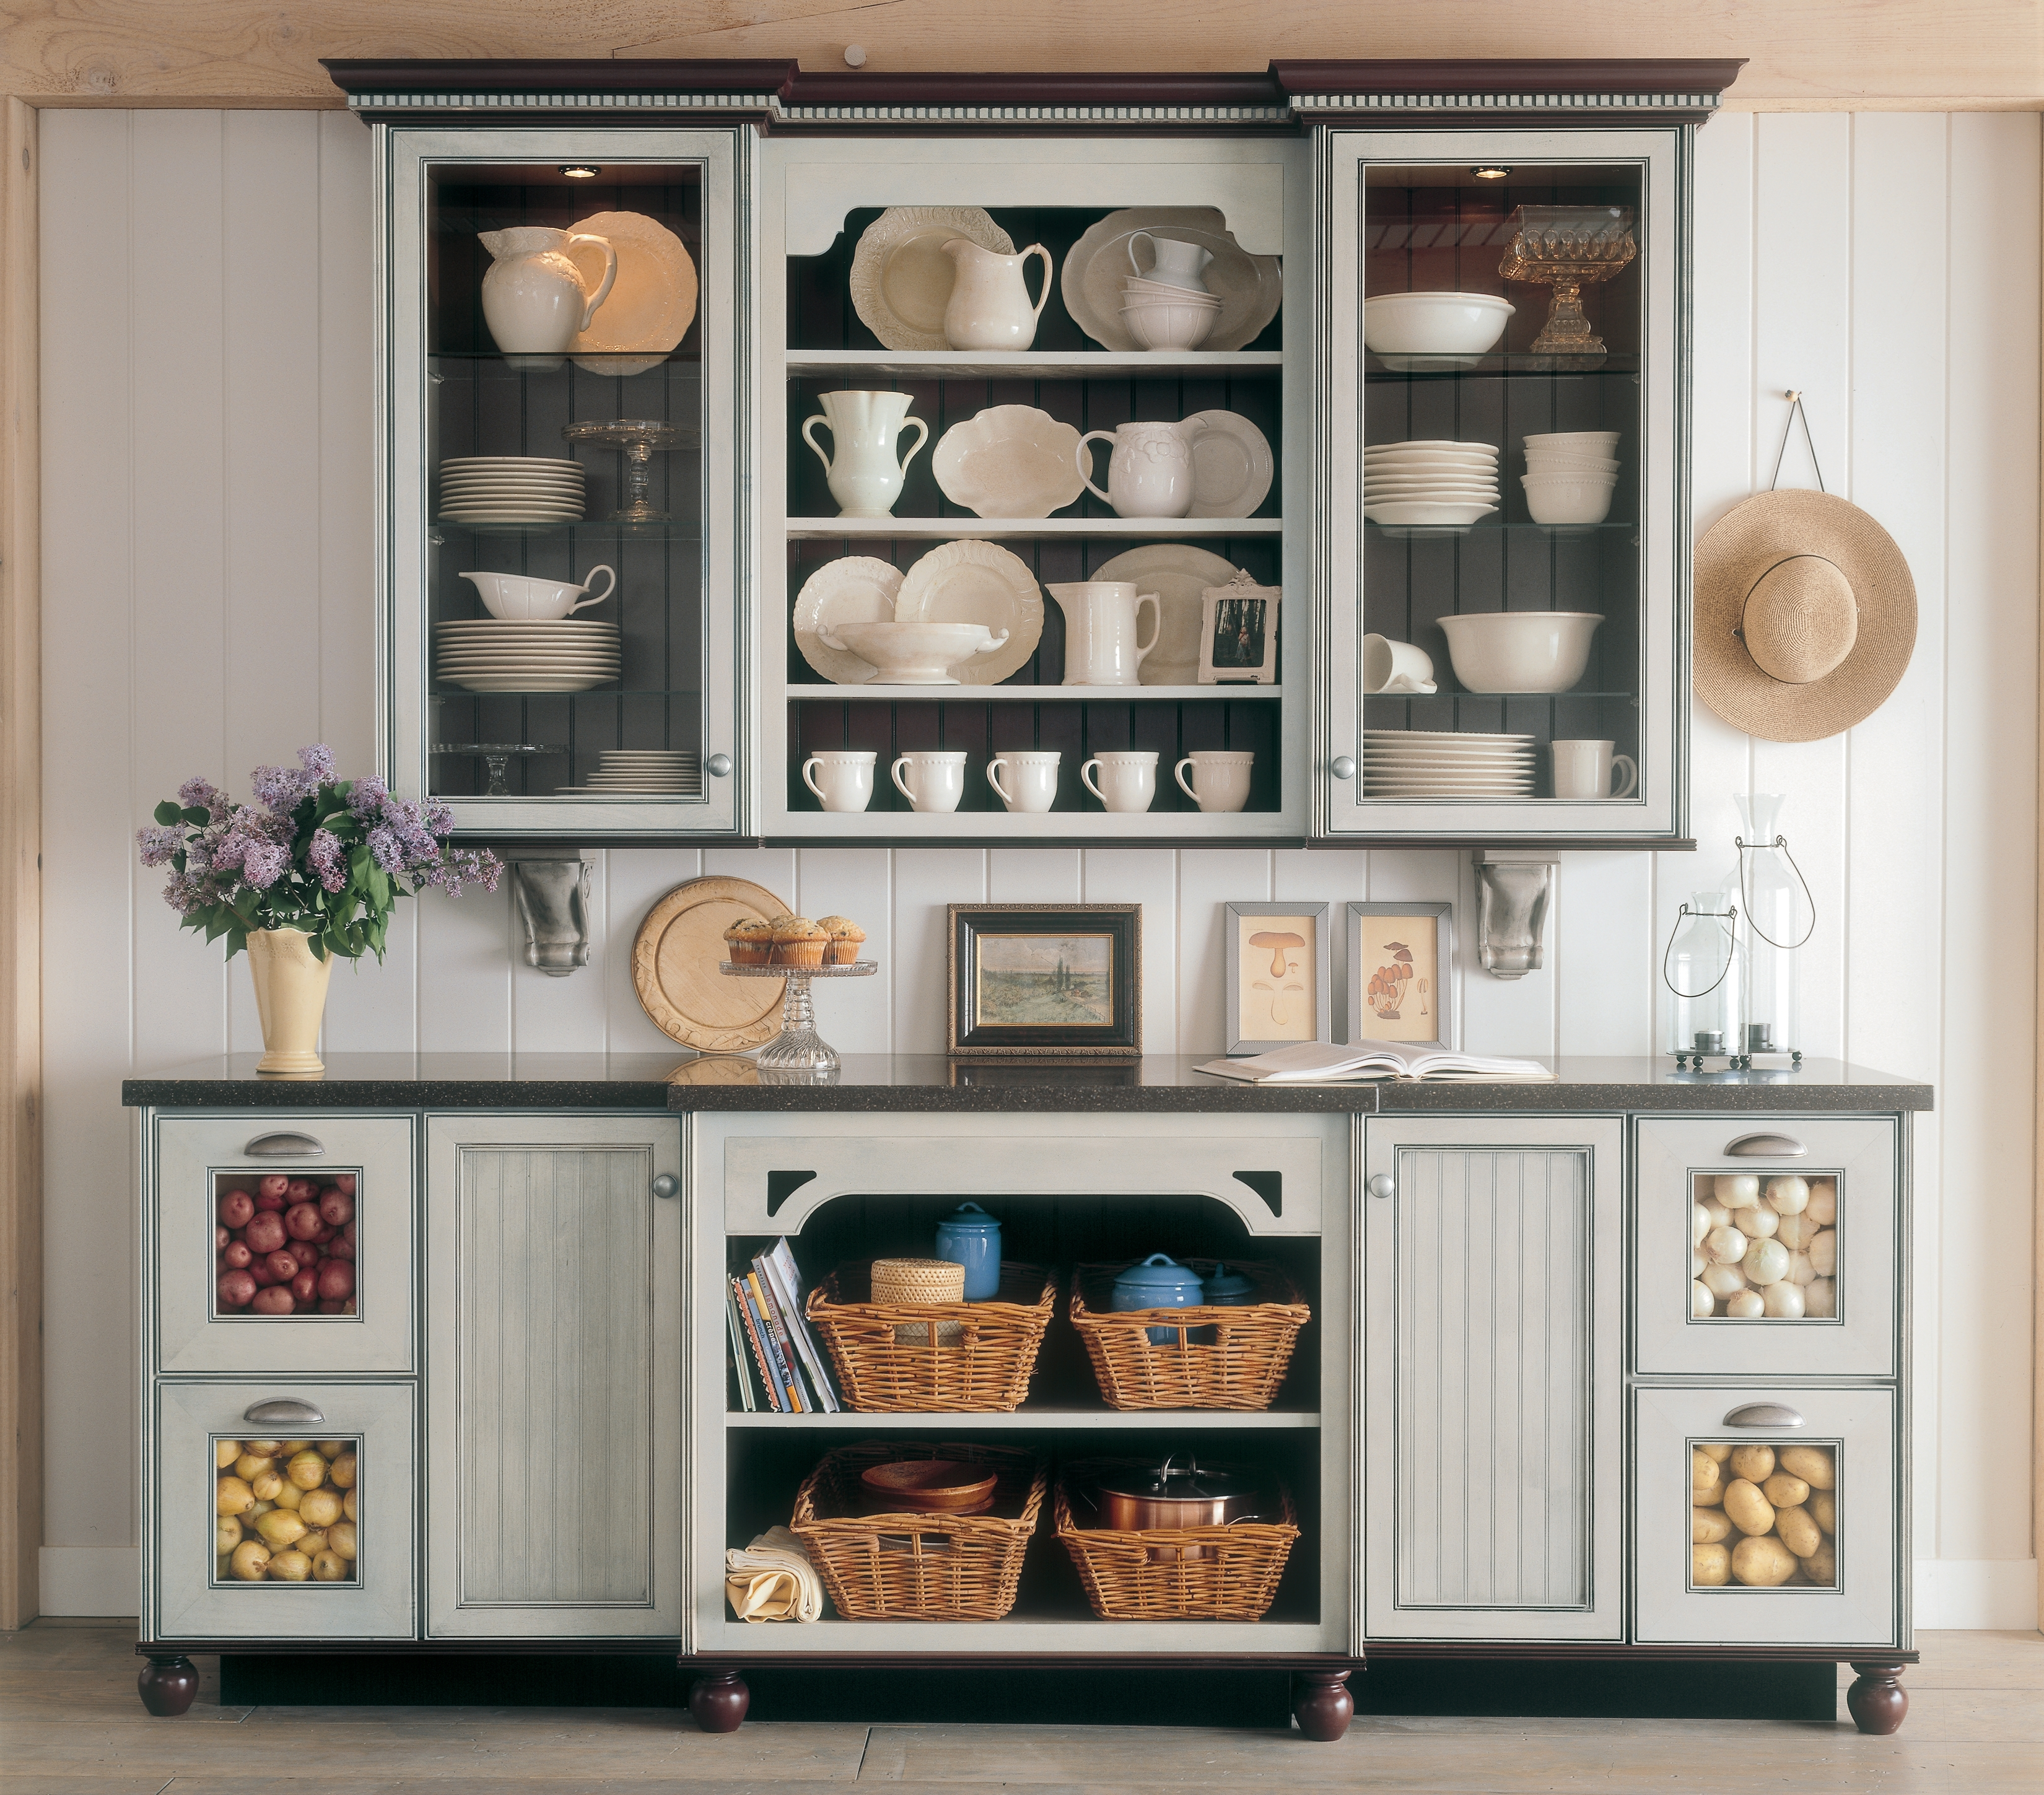 Top 6 Ideas For Designing A Country Kitchen Merillat